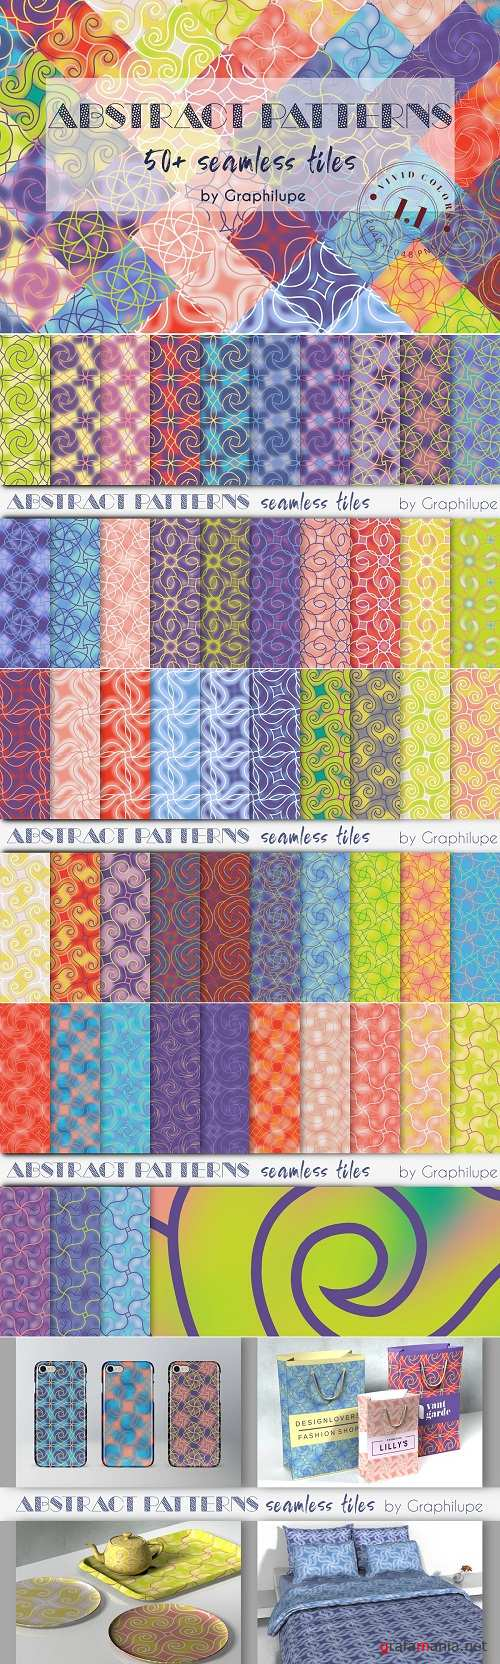 Abstract Patterns Vol. 1.1 - 2878439